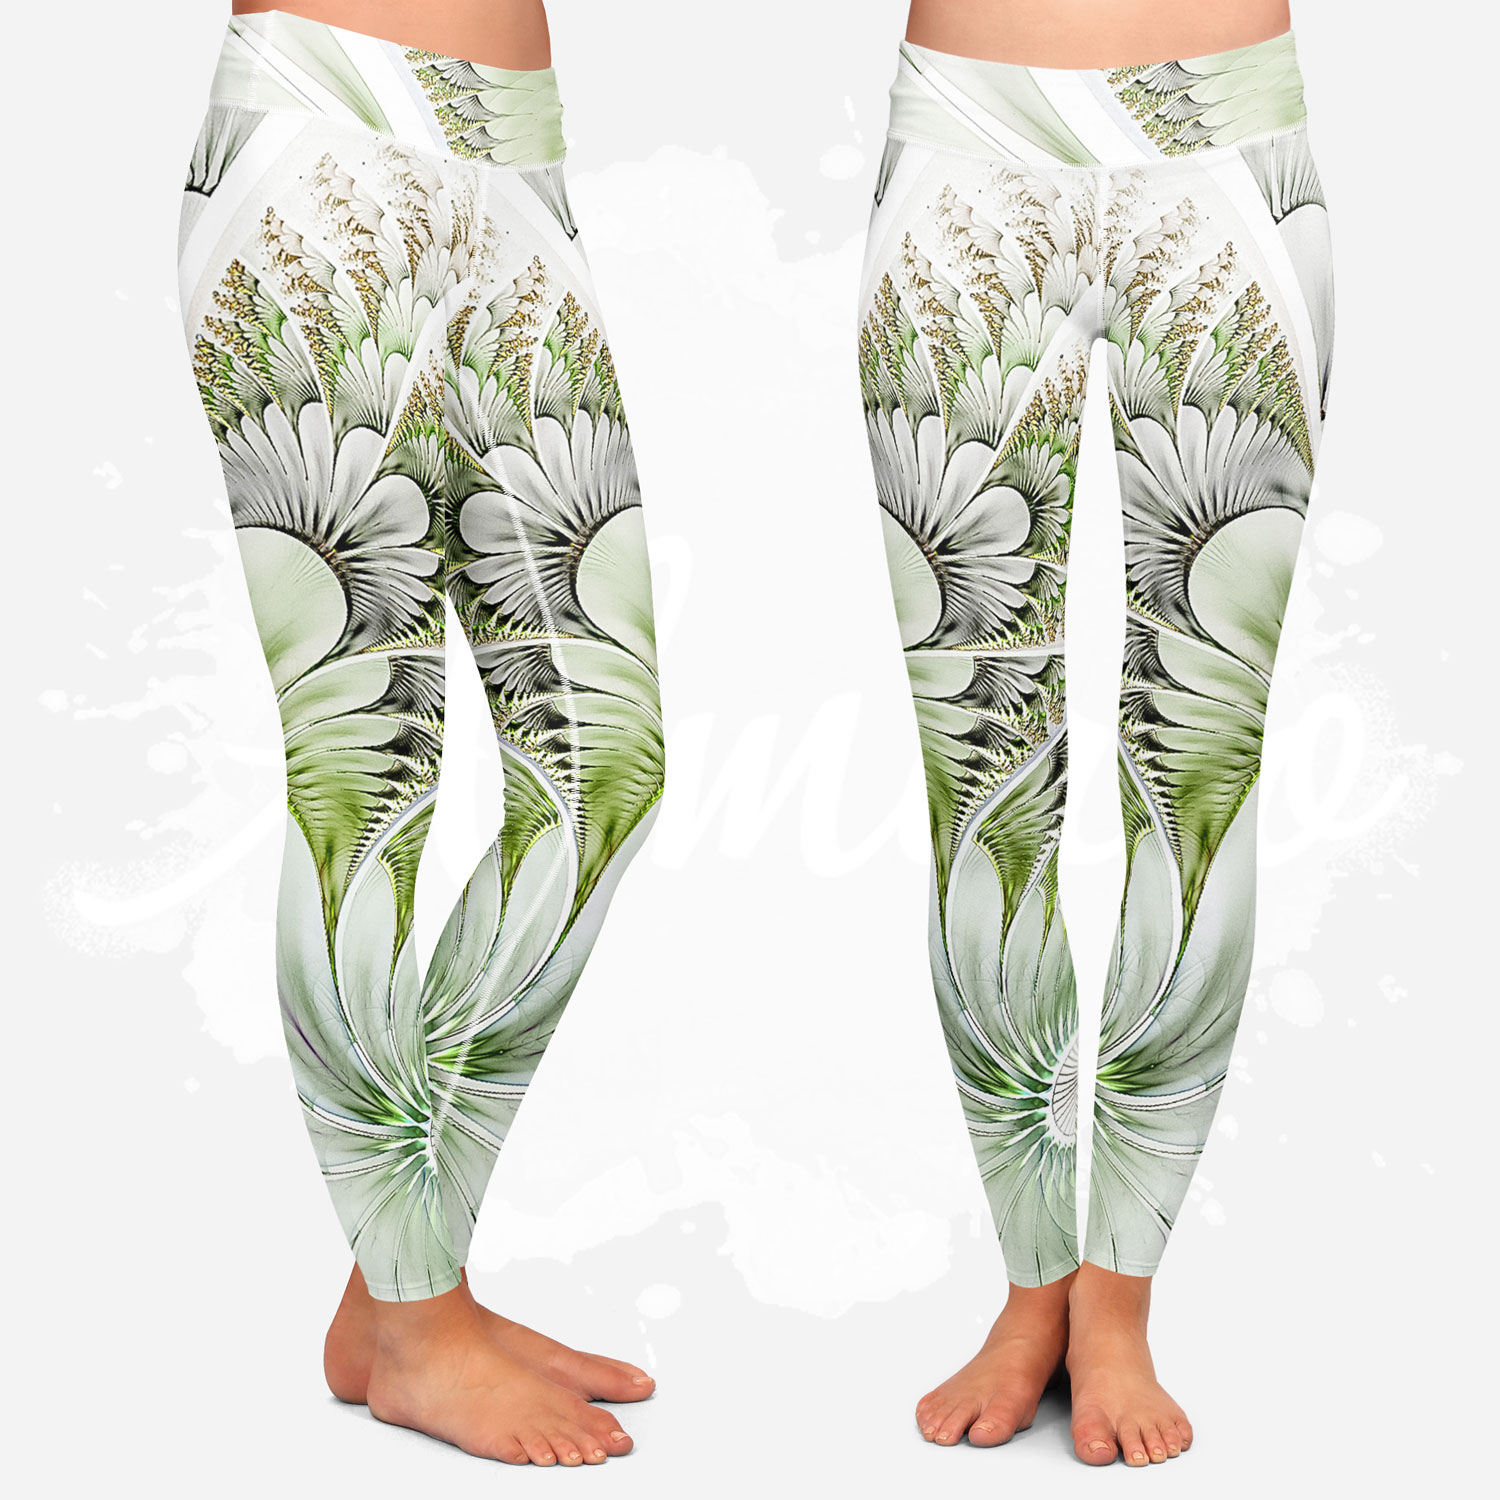 Leggings for women, Almirio, yoga style.